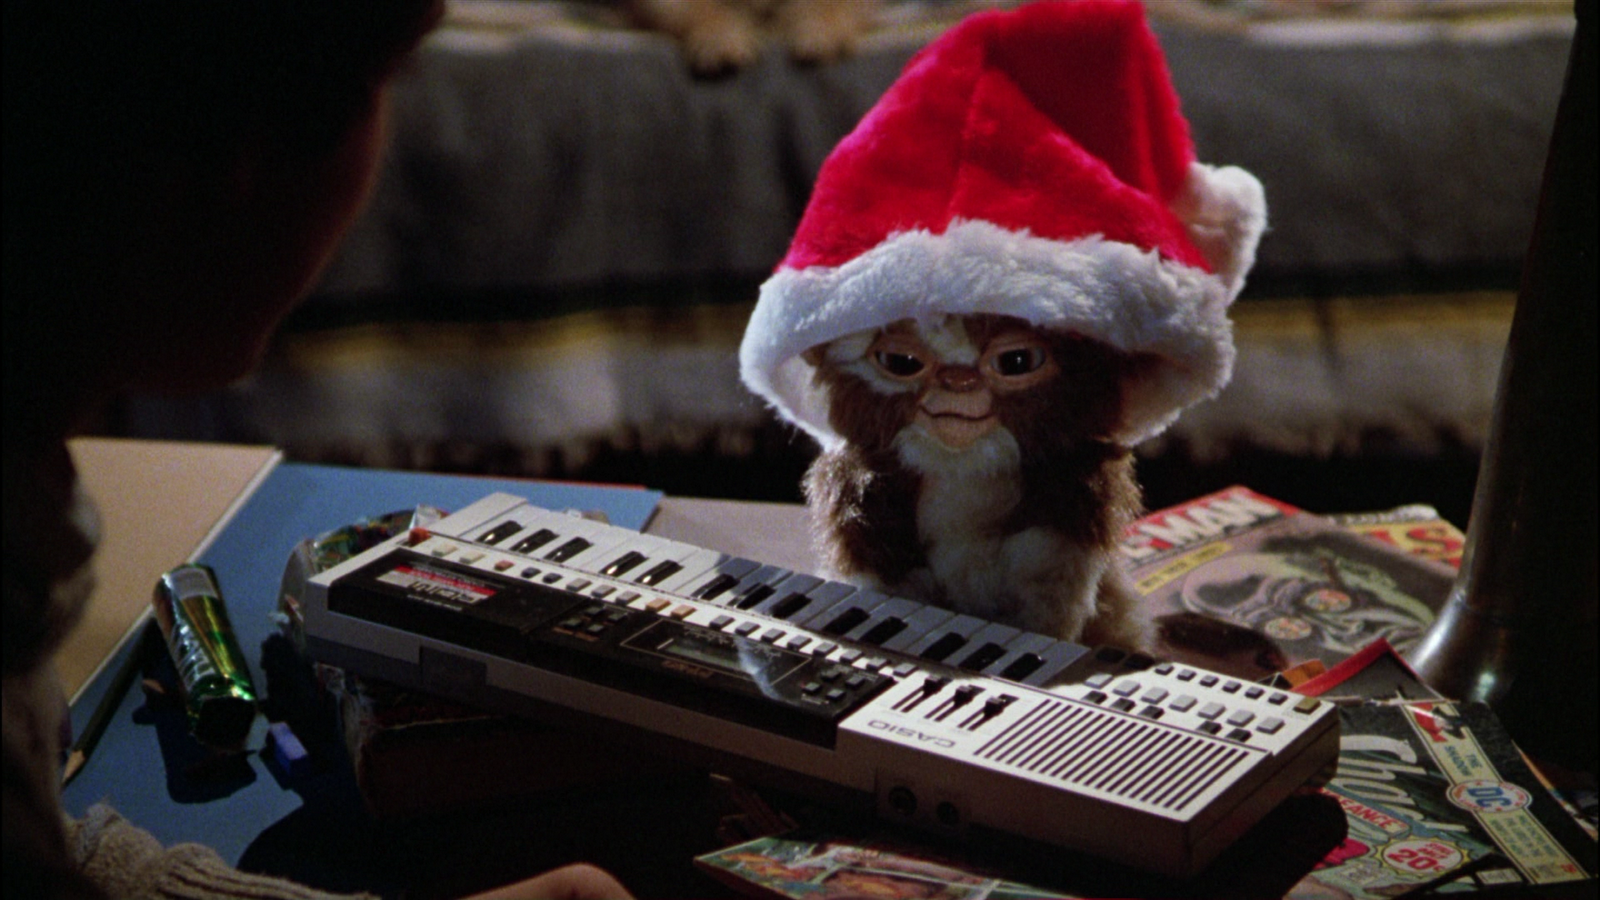 Merry Scary Christmas: Gremlins Just Gets Me